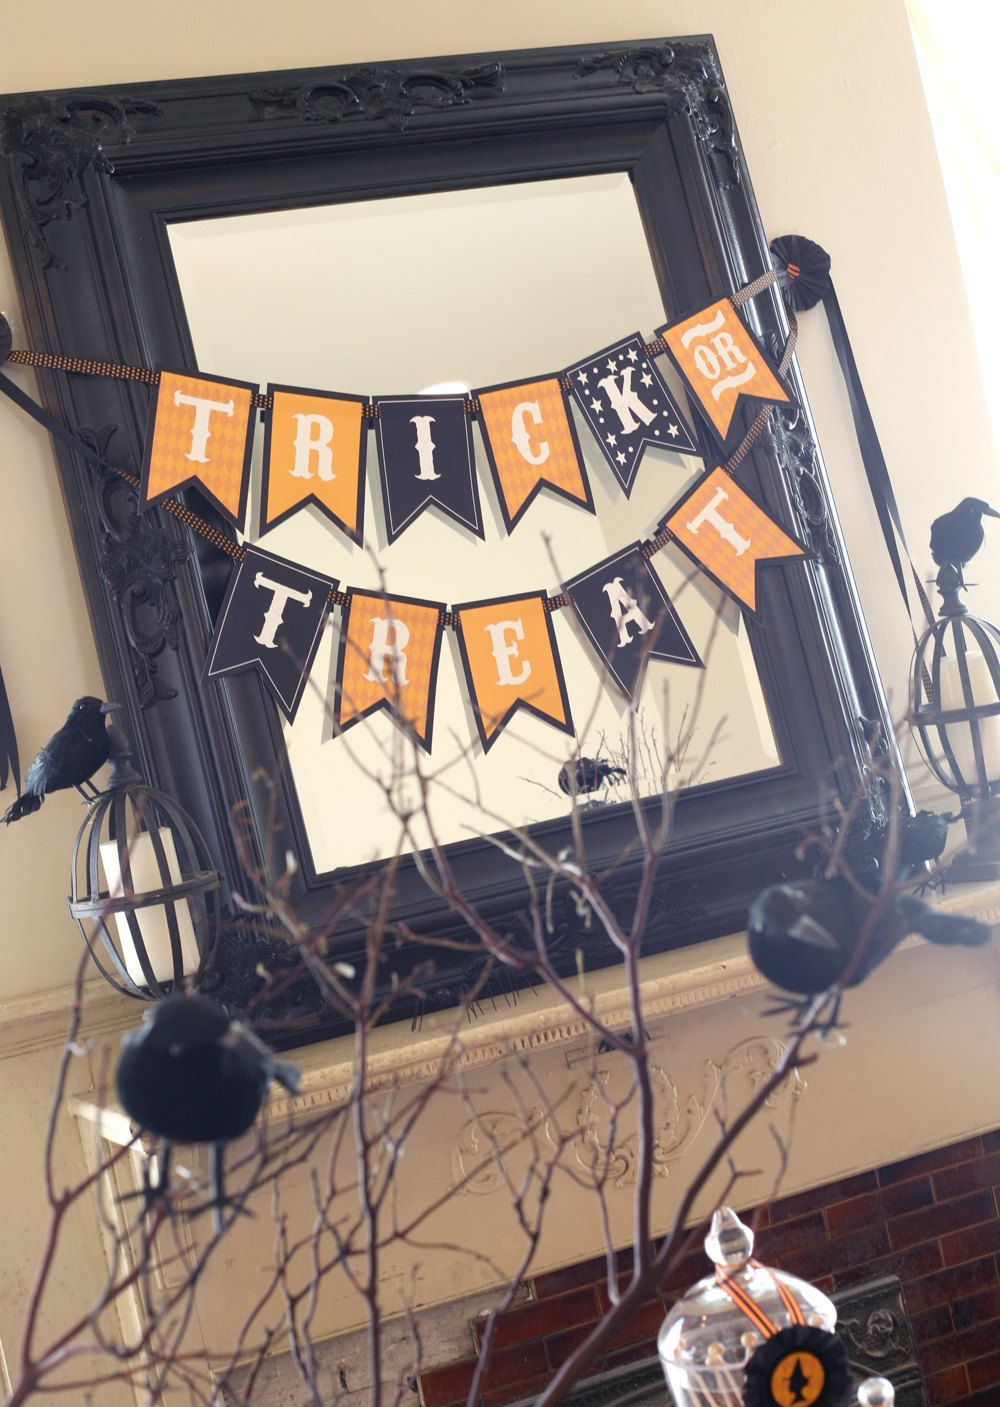 Bewitching Happy Halloween and Trick or Treat Banners